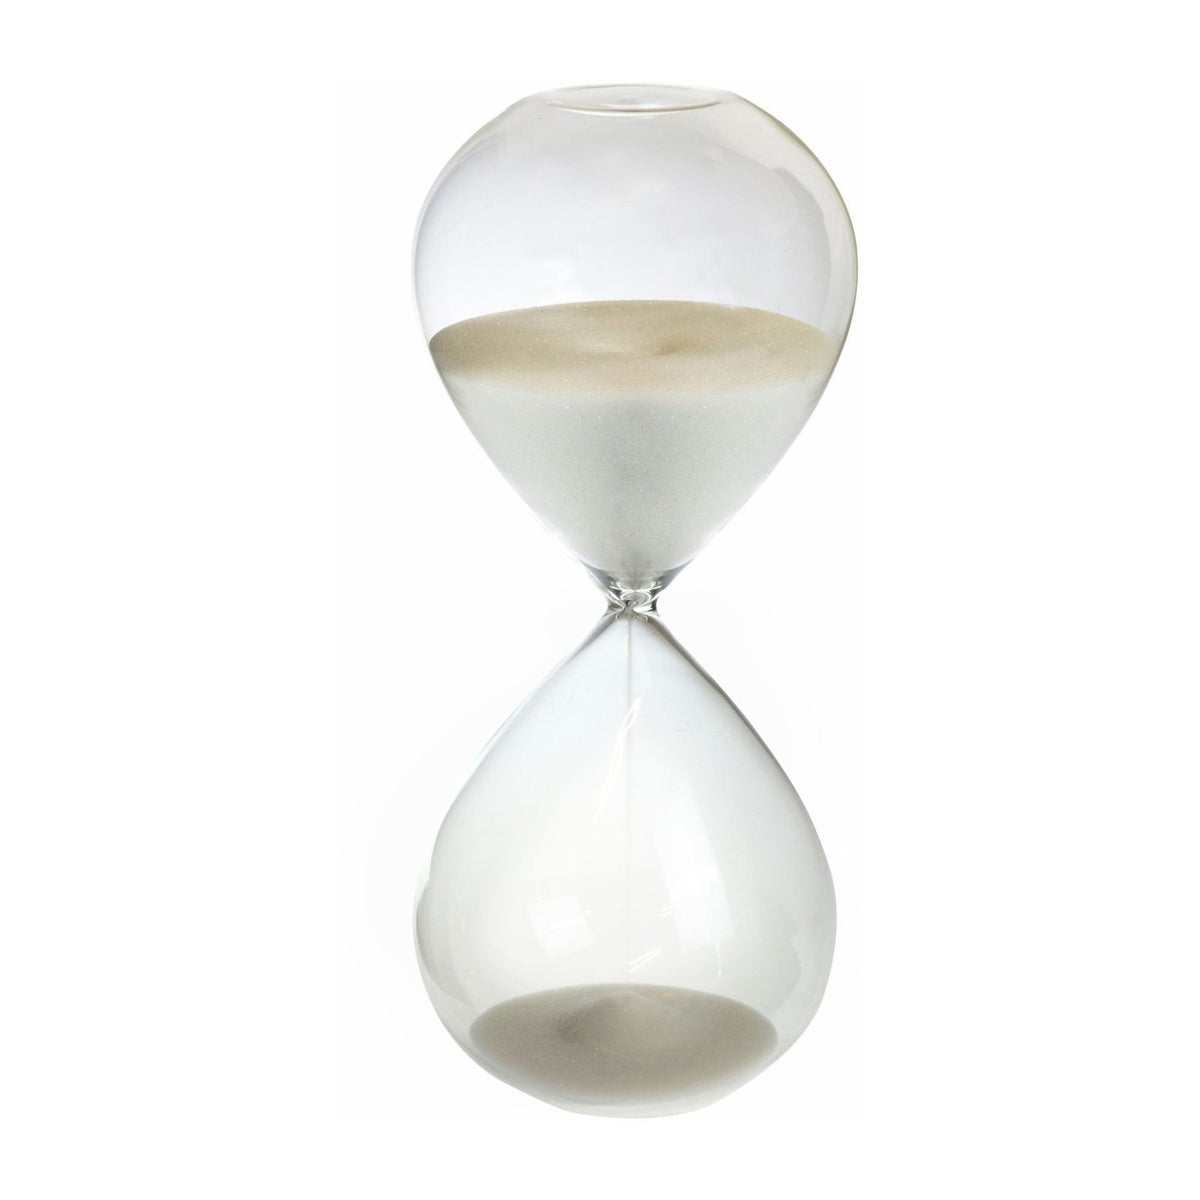 Nicola Spring Hourglass Kitchen Sand Timer - 60 minutes